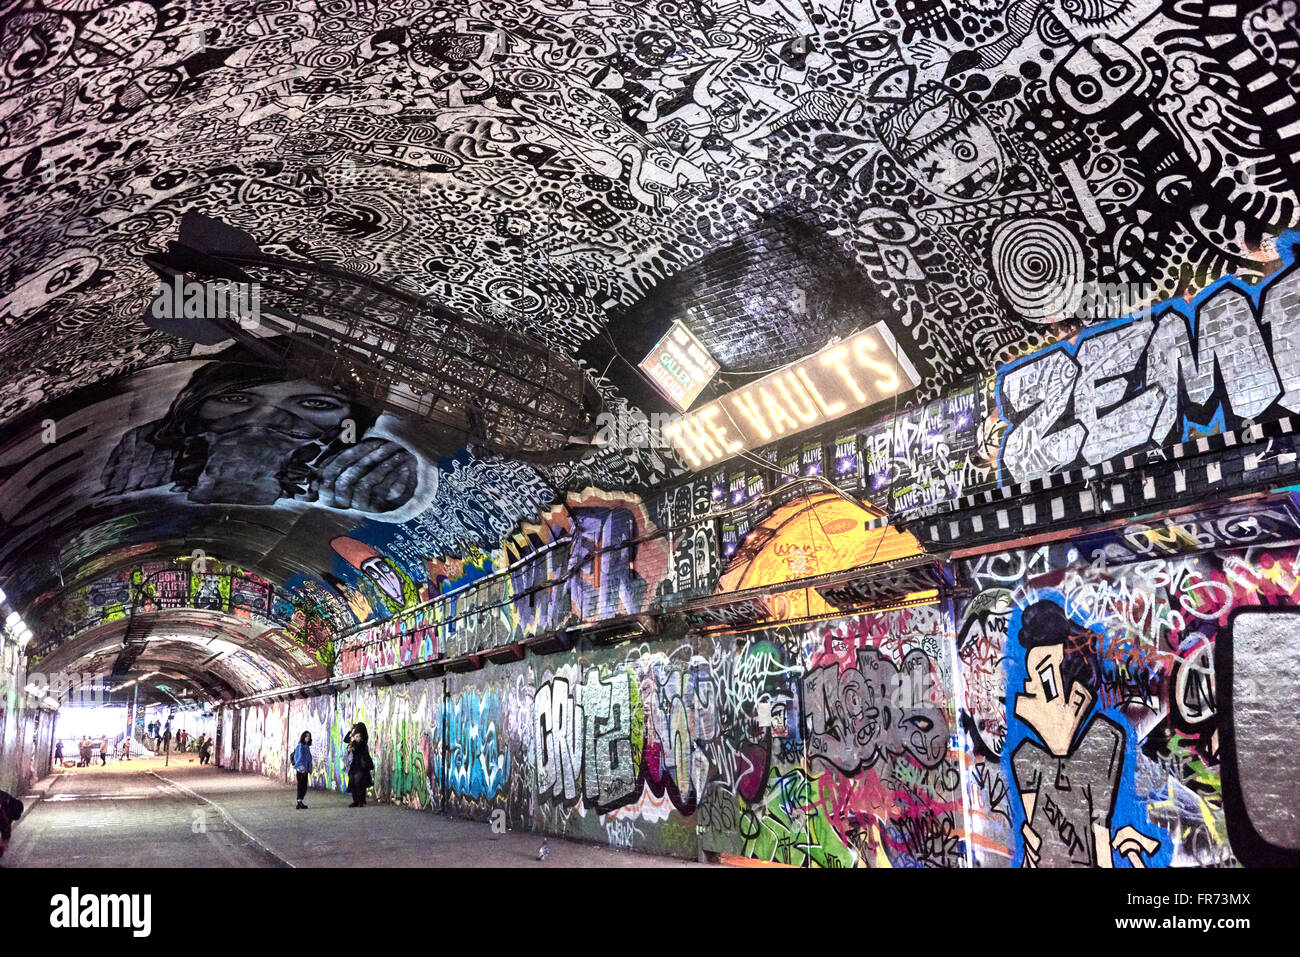 leake street also known as the banksy tunnel or graffiti tunnel stock photo 100345530 alamy. Black Bedroom Furniture Sets. Home Design Ideas